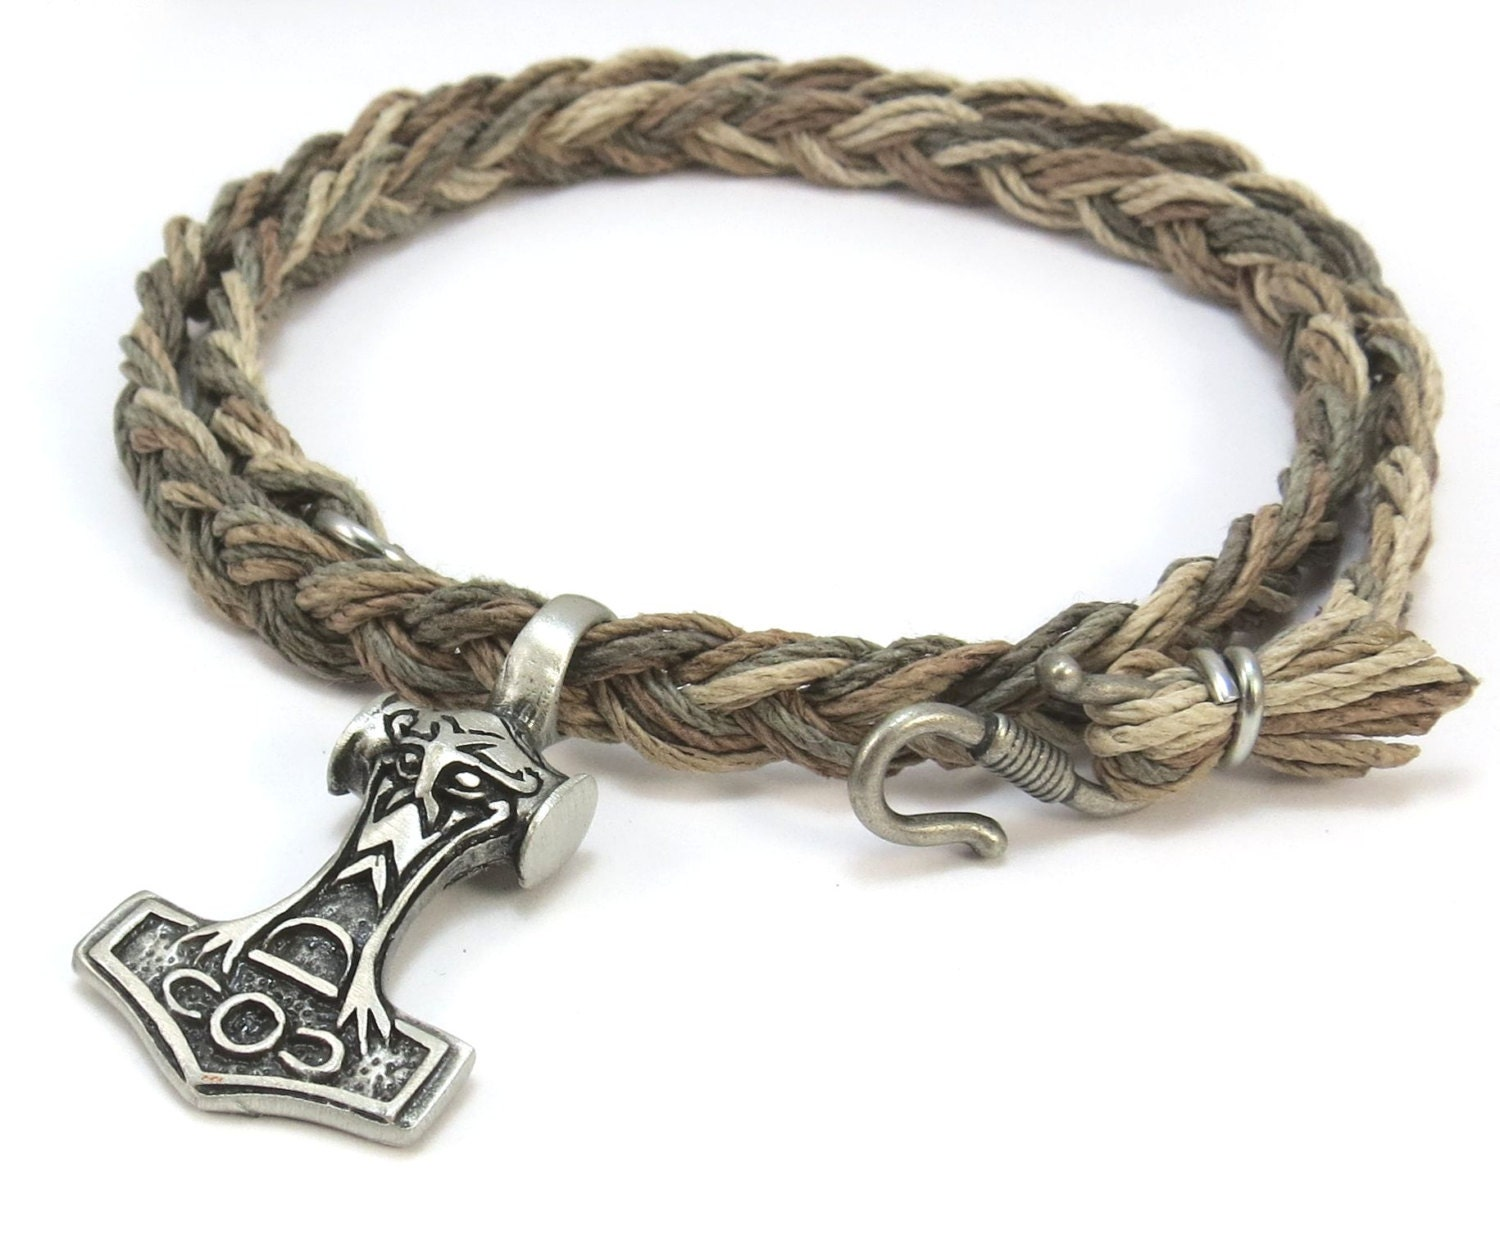 How To Make Hemp Necklaces: Mjolnir Pendant Viking Jewelry Hemp Necklace With By